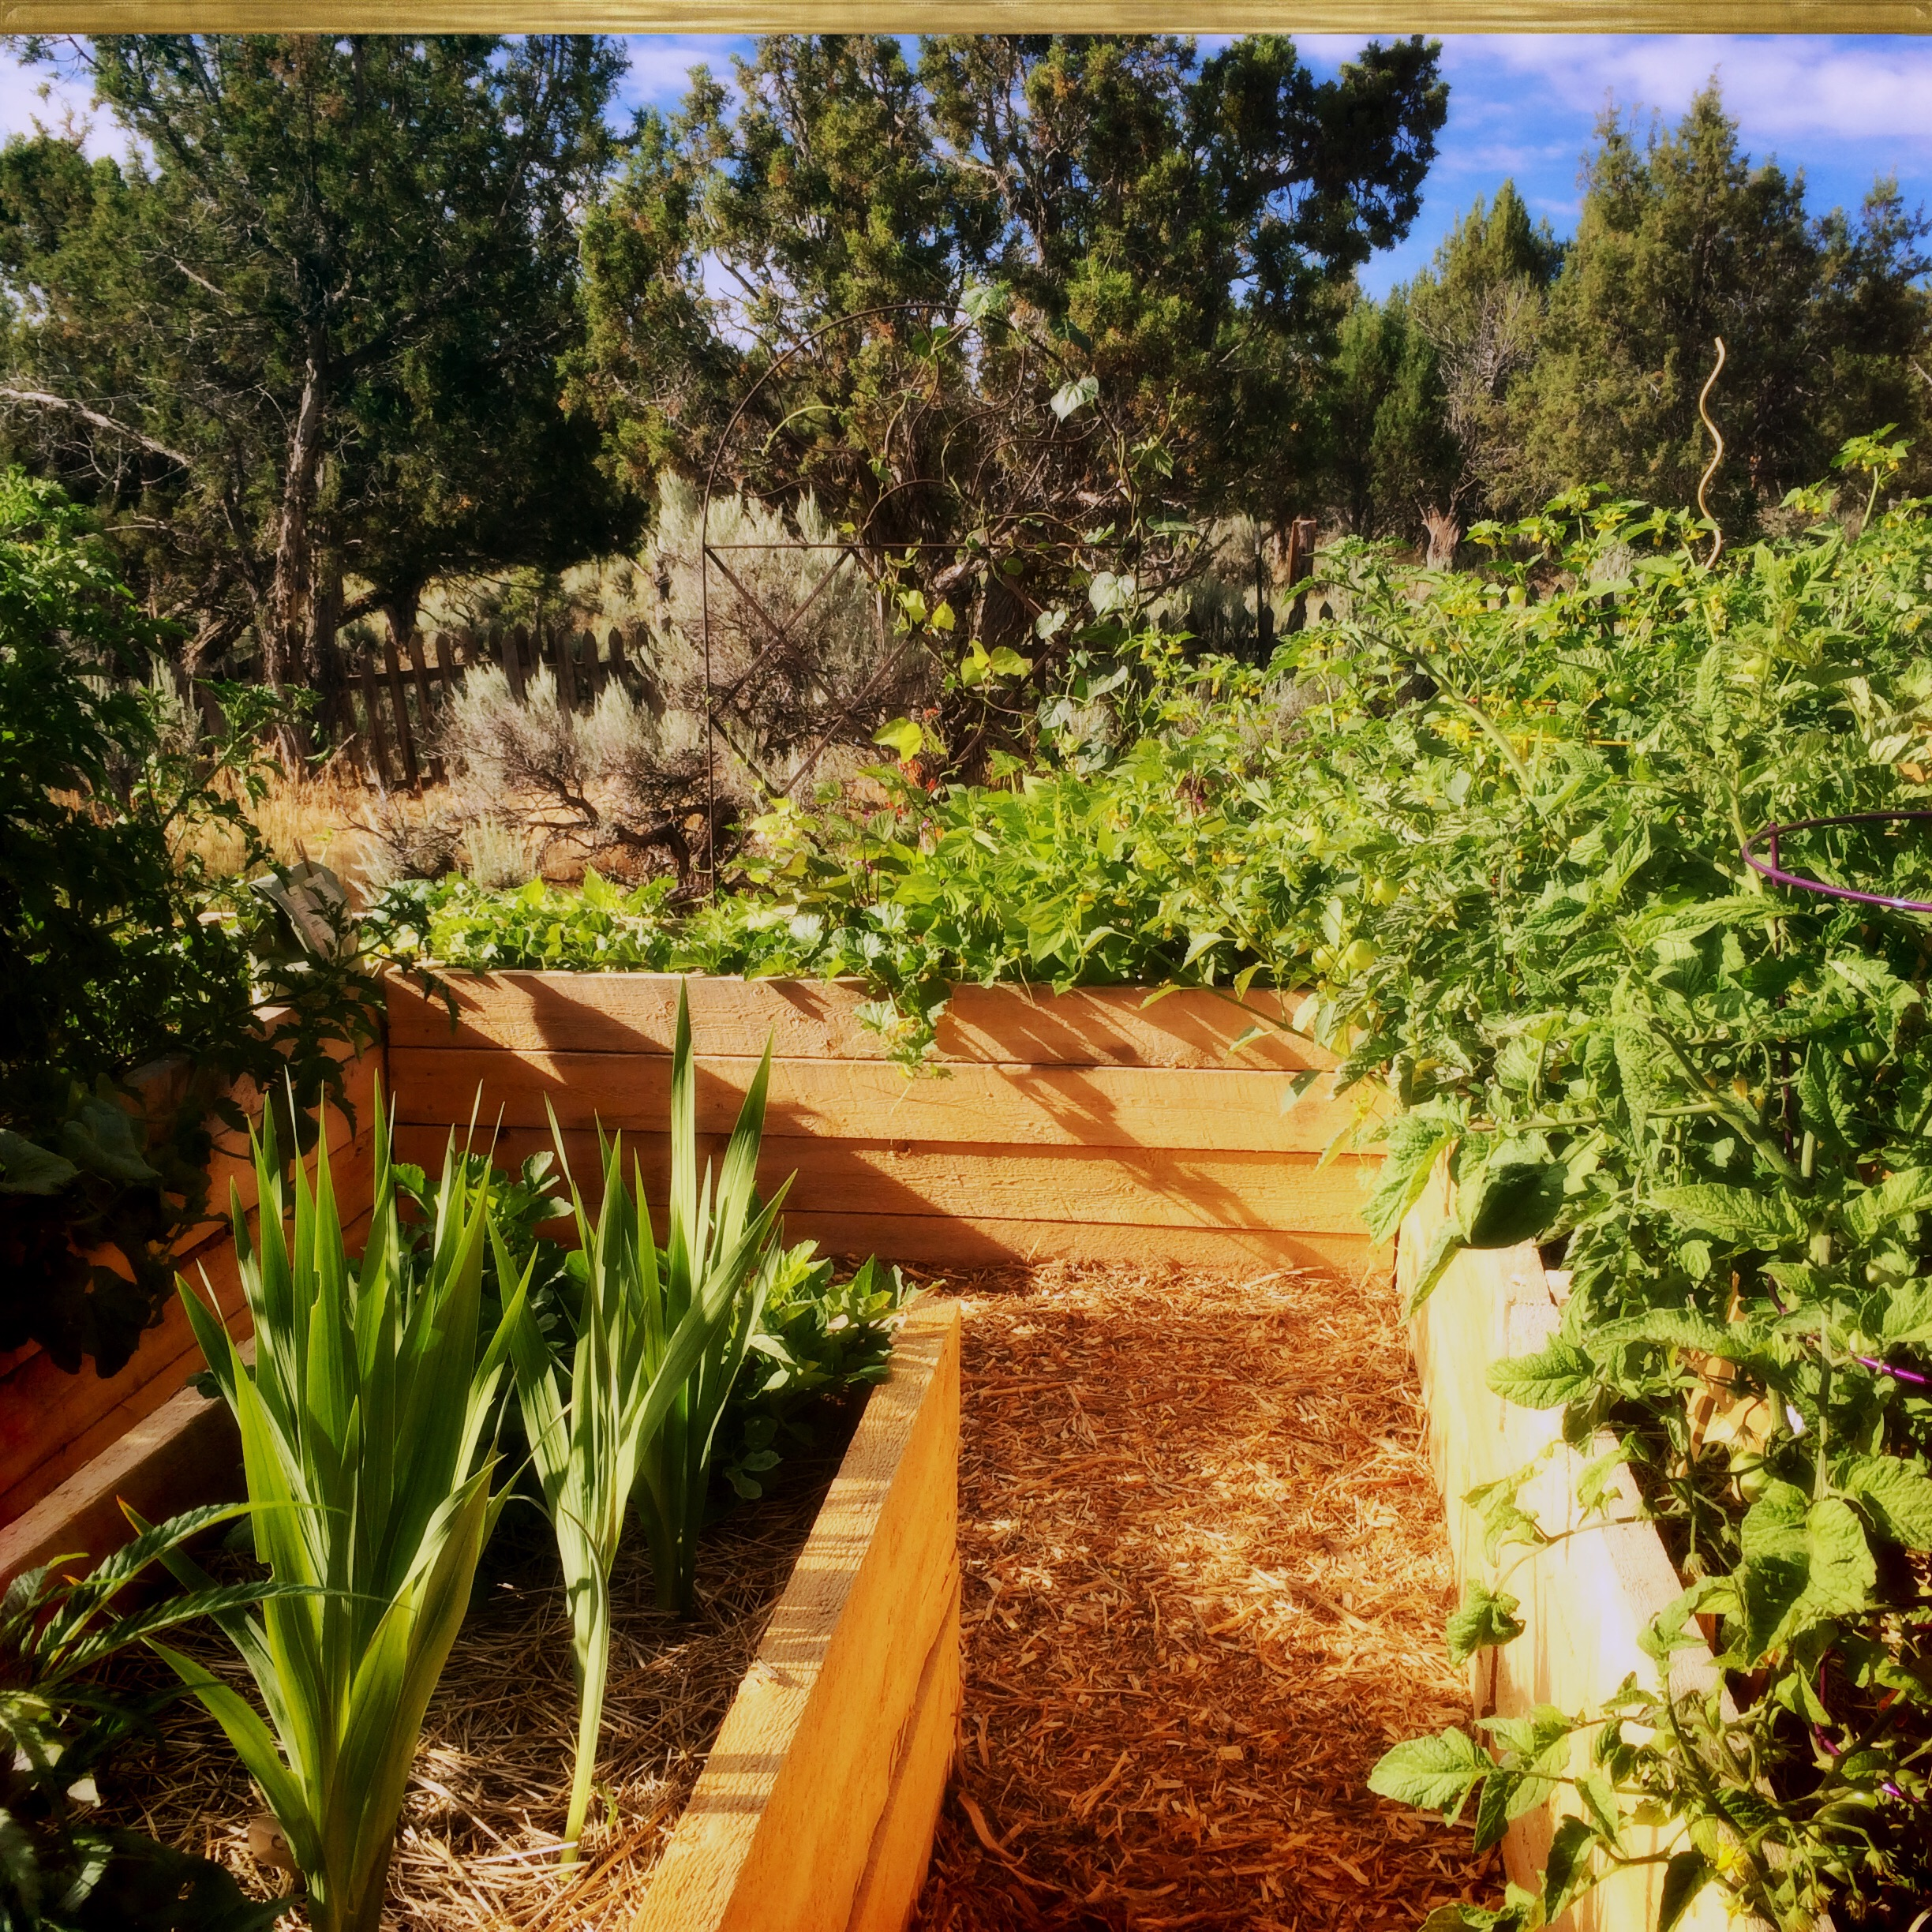 The raised beds from the entrance, looking south towards the bush beans and melons.